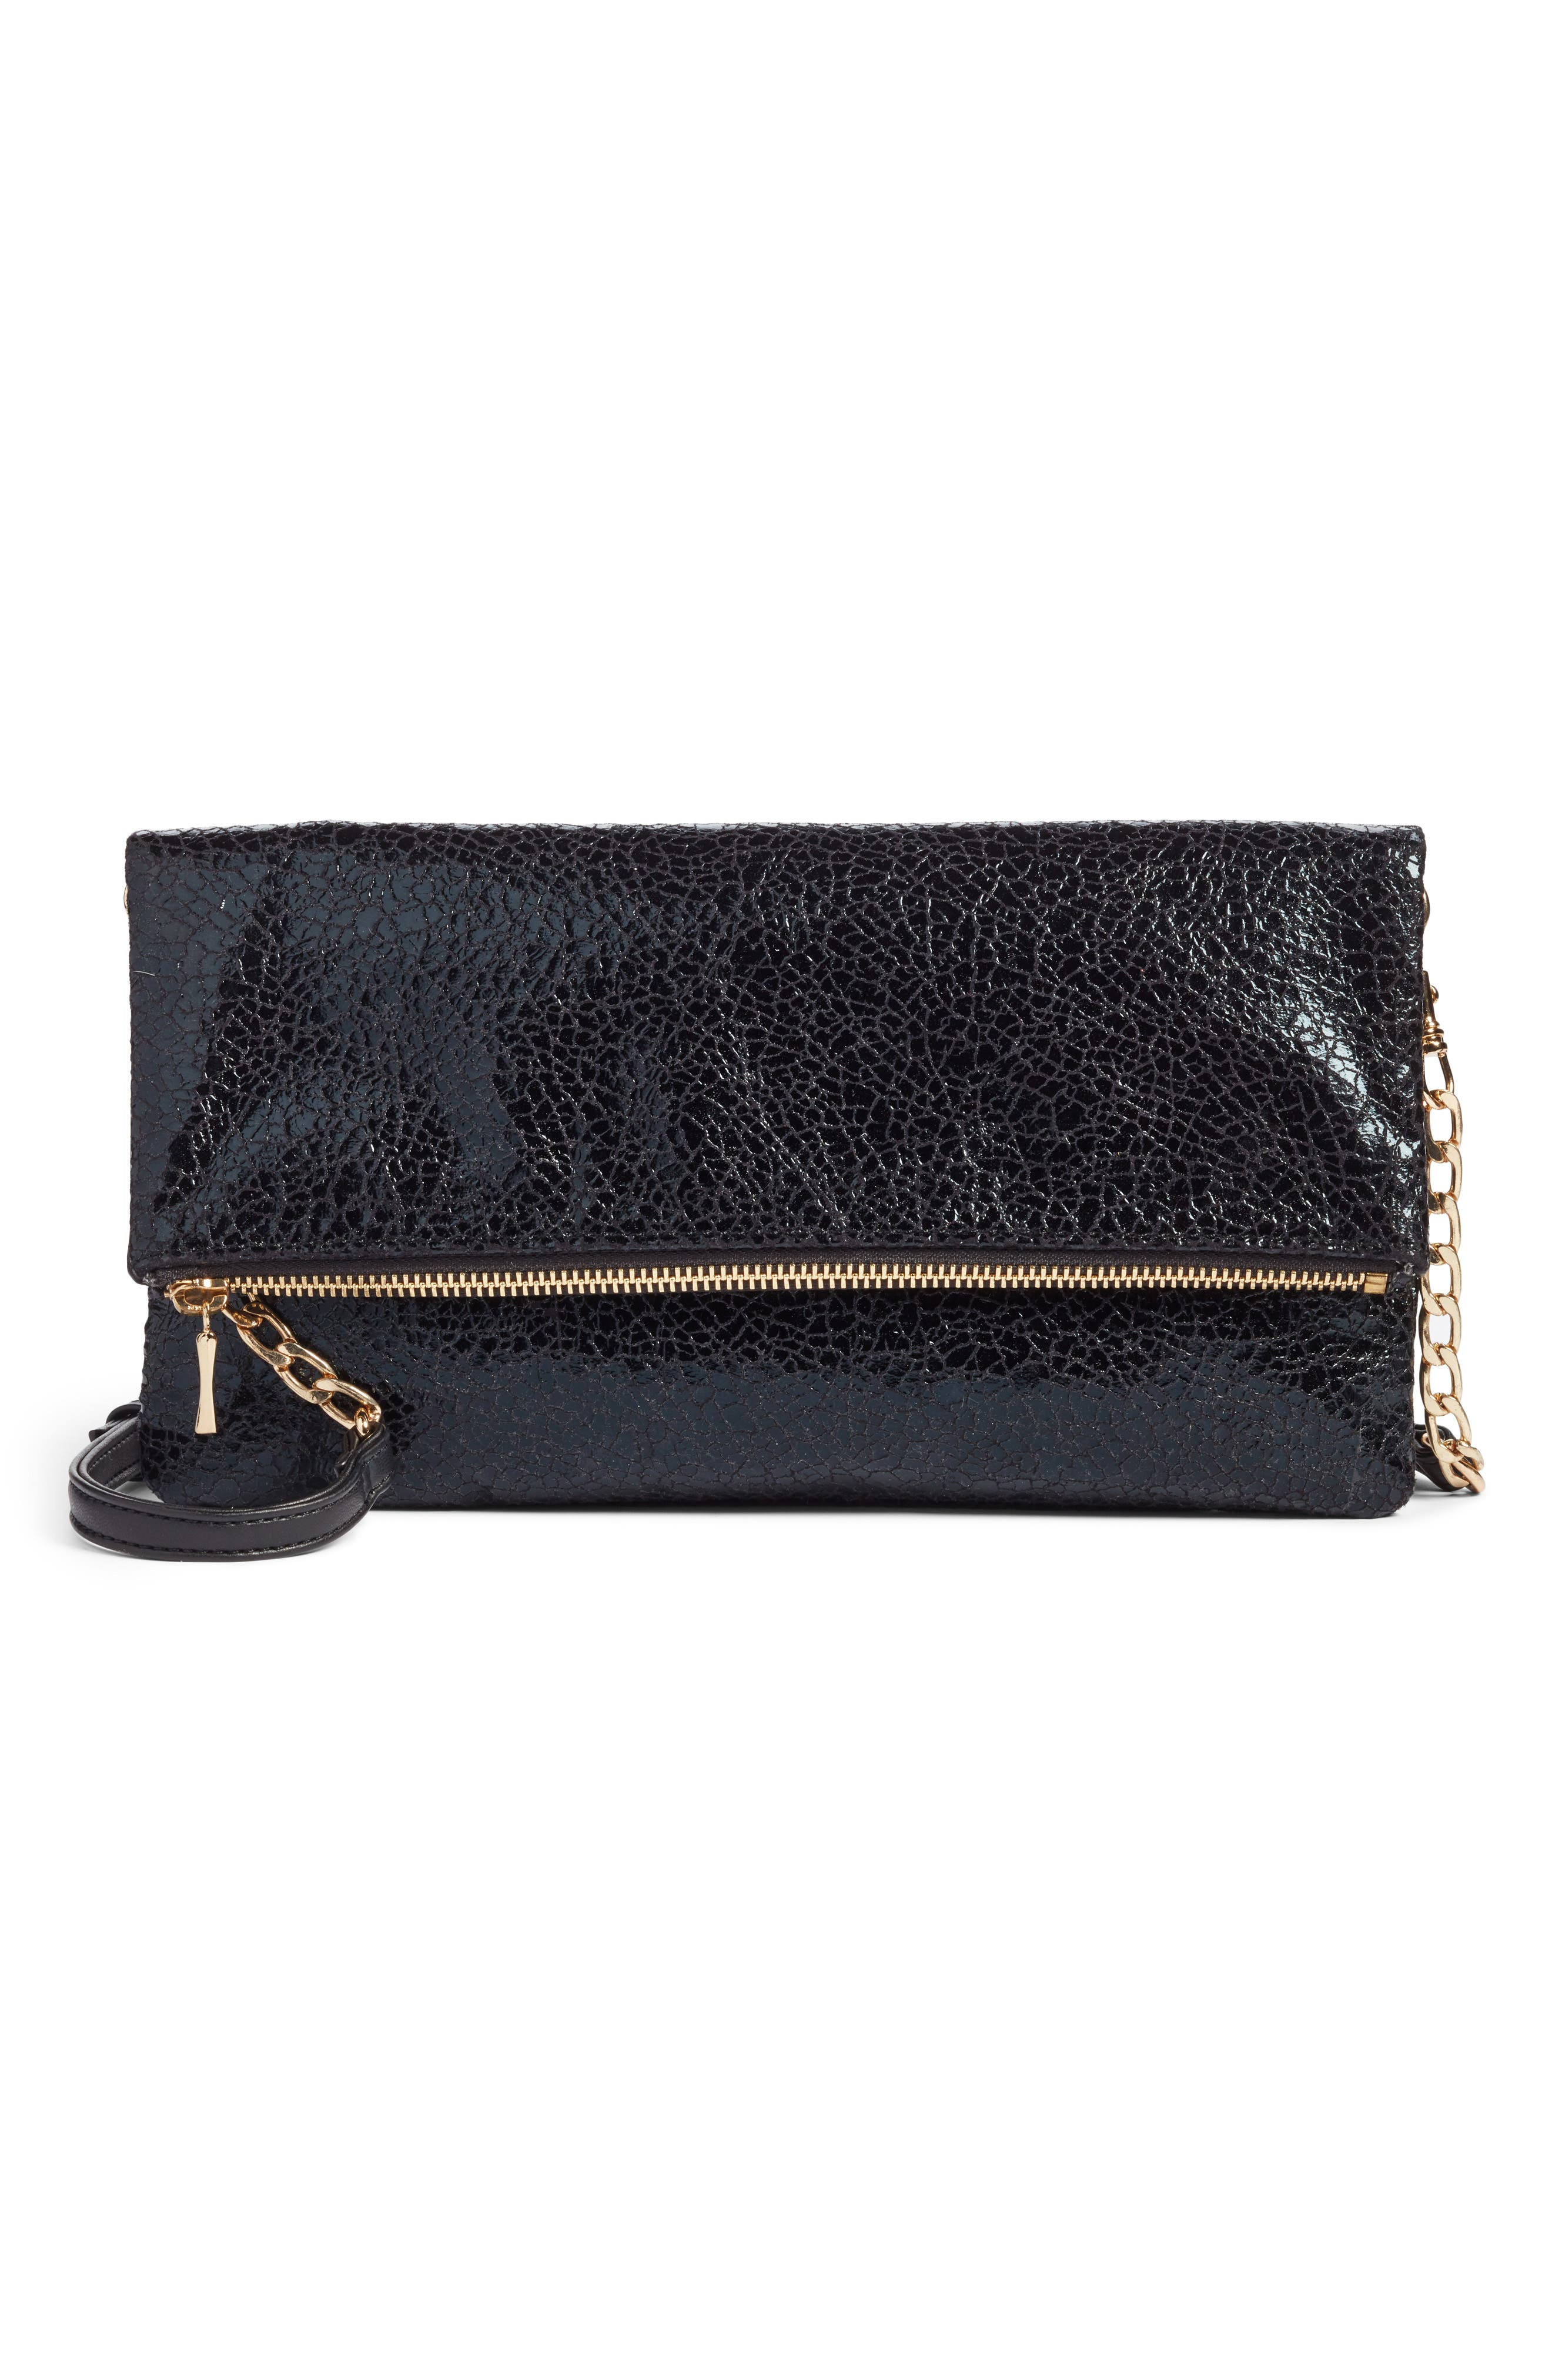 Alternate Image 1 Selected - Sole Society Black Crackle Faux Leather Foldover Clutch